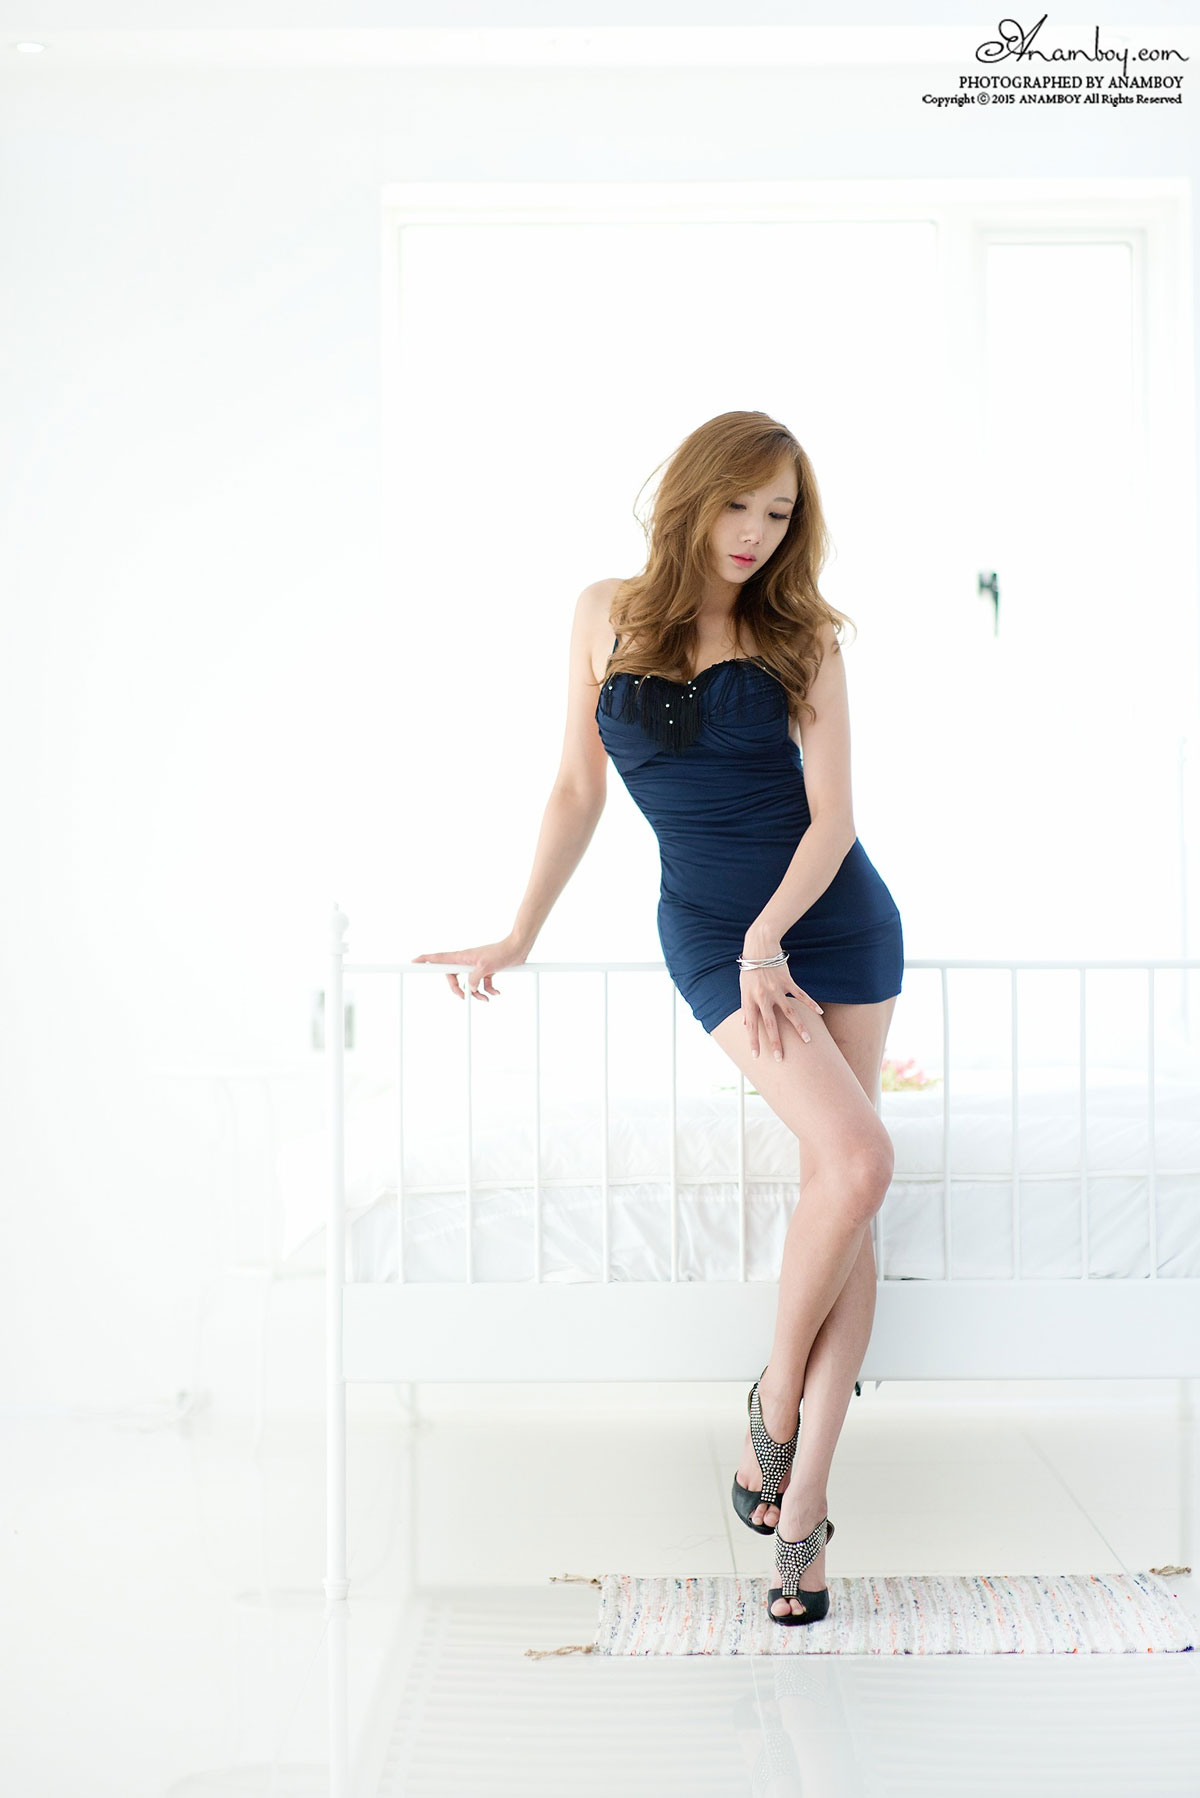 Seo Aran blue dress studio photoshoot